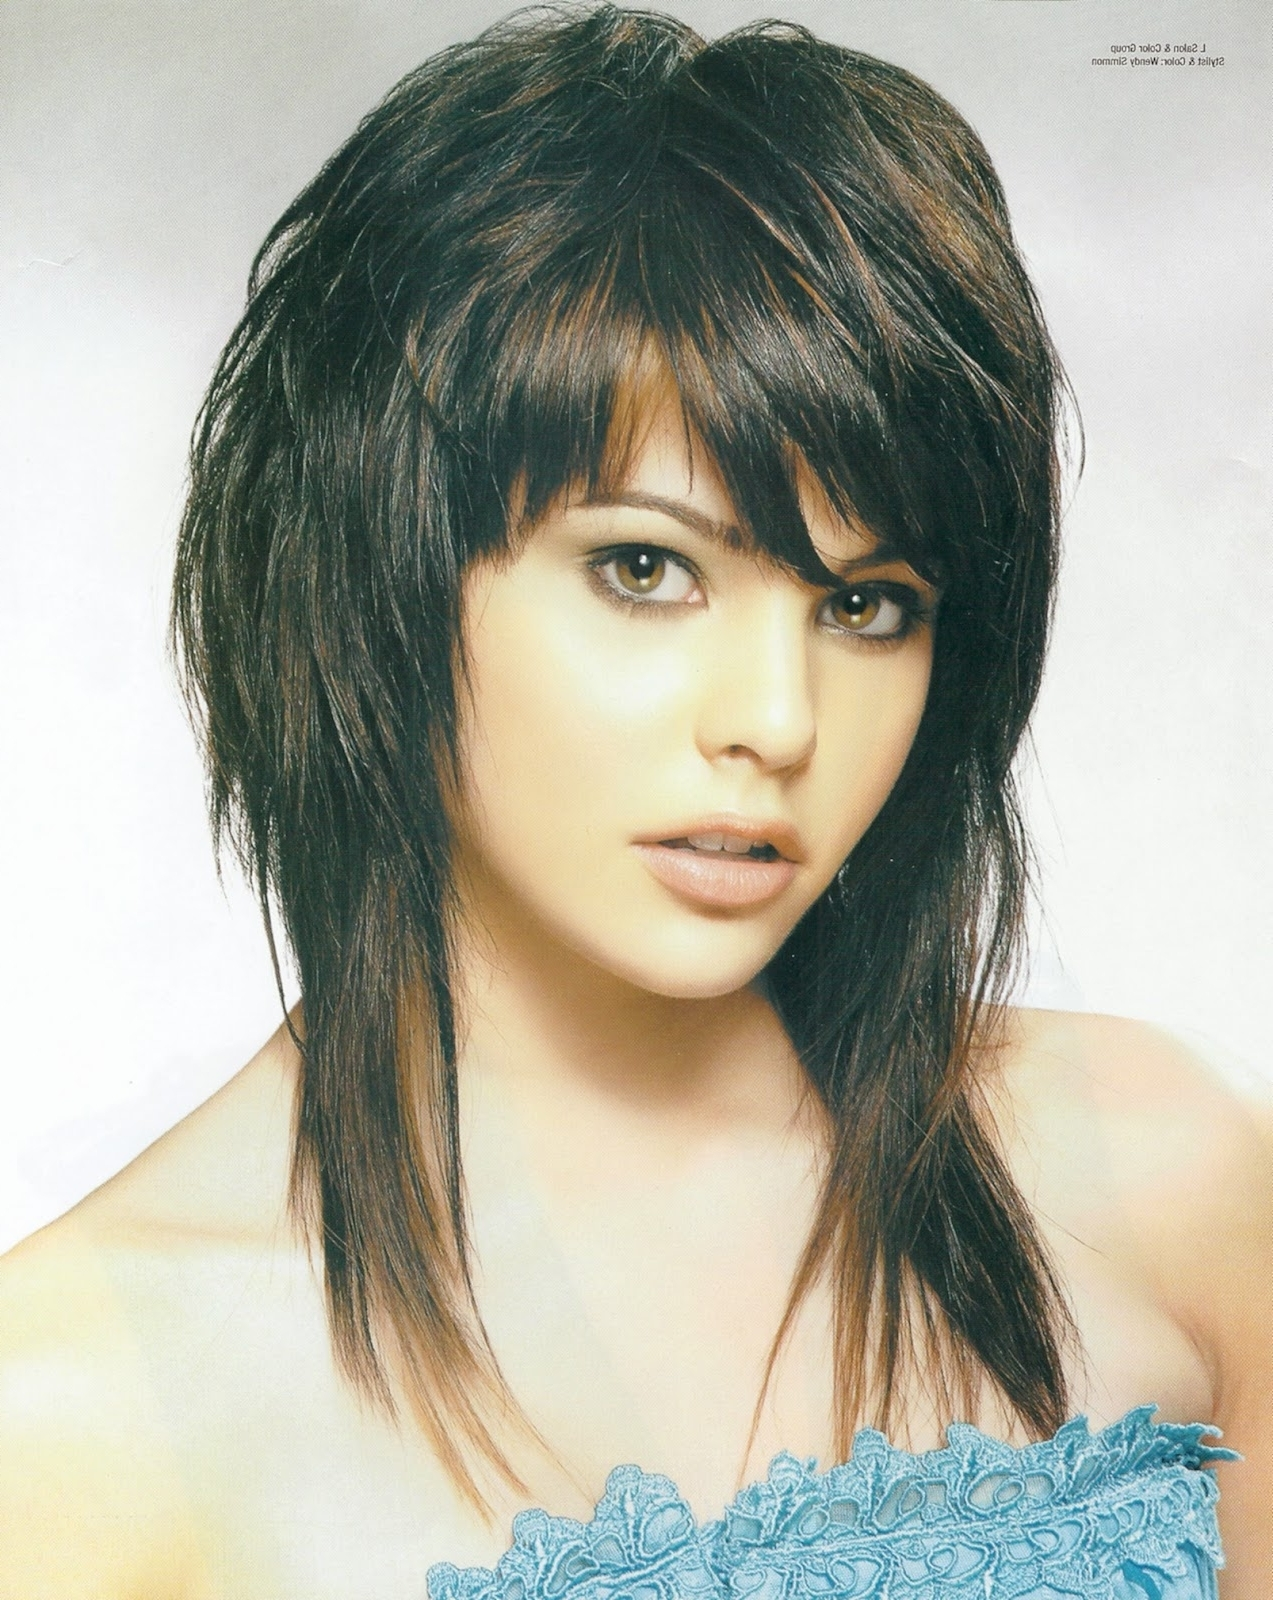 Shag Hairstyles For Women – Hairstyles For Women Intended For Preferred Japanese Shaggy Hairstyles (View 5 of 15)